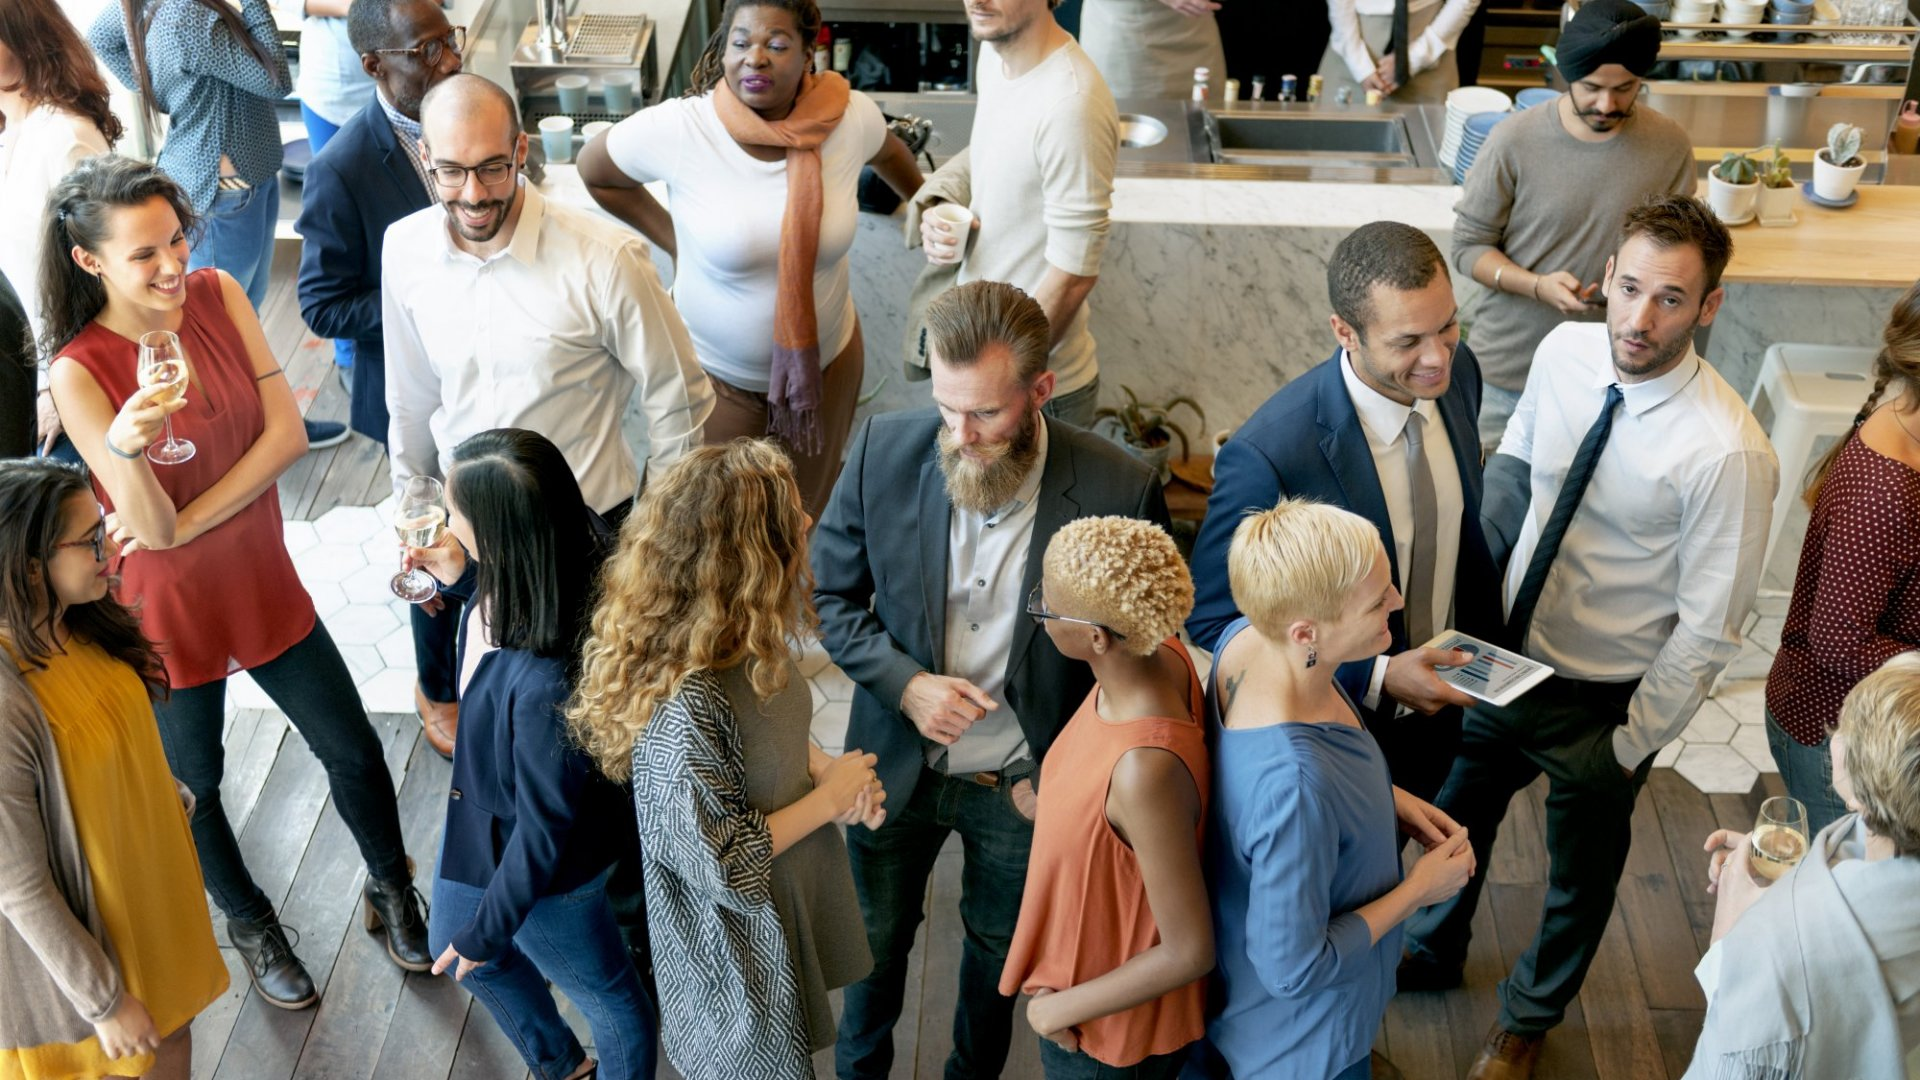 2 Key Reasons To Make Time For Human Connections At Work: Influence And Collaboration